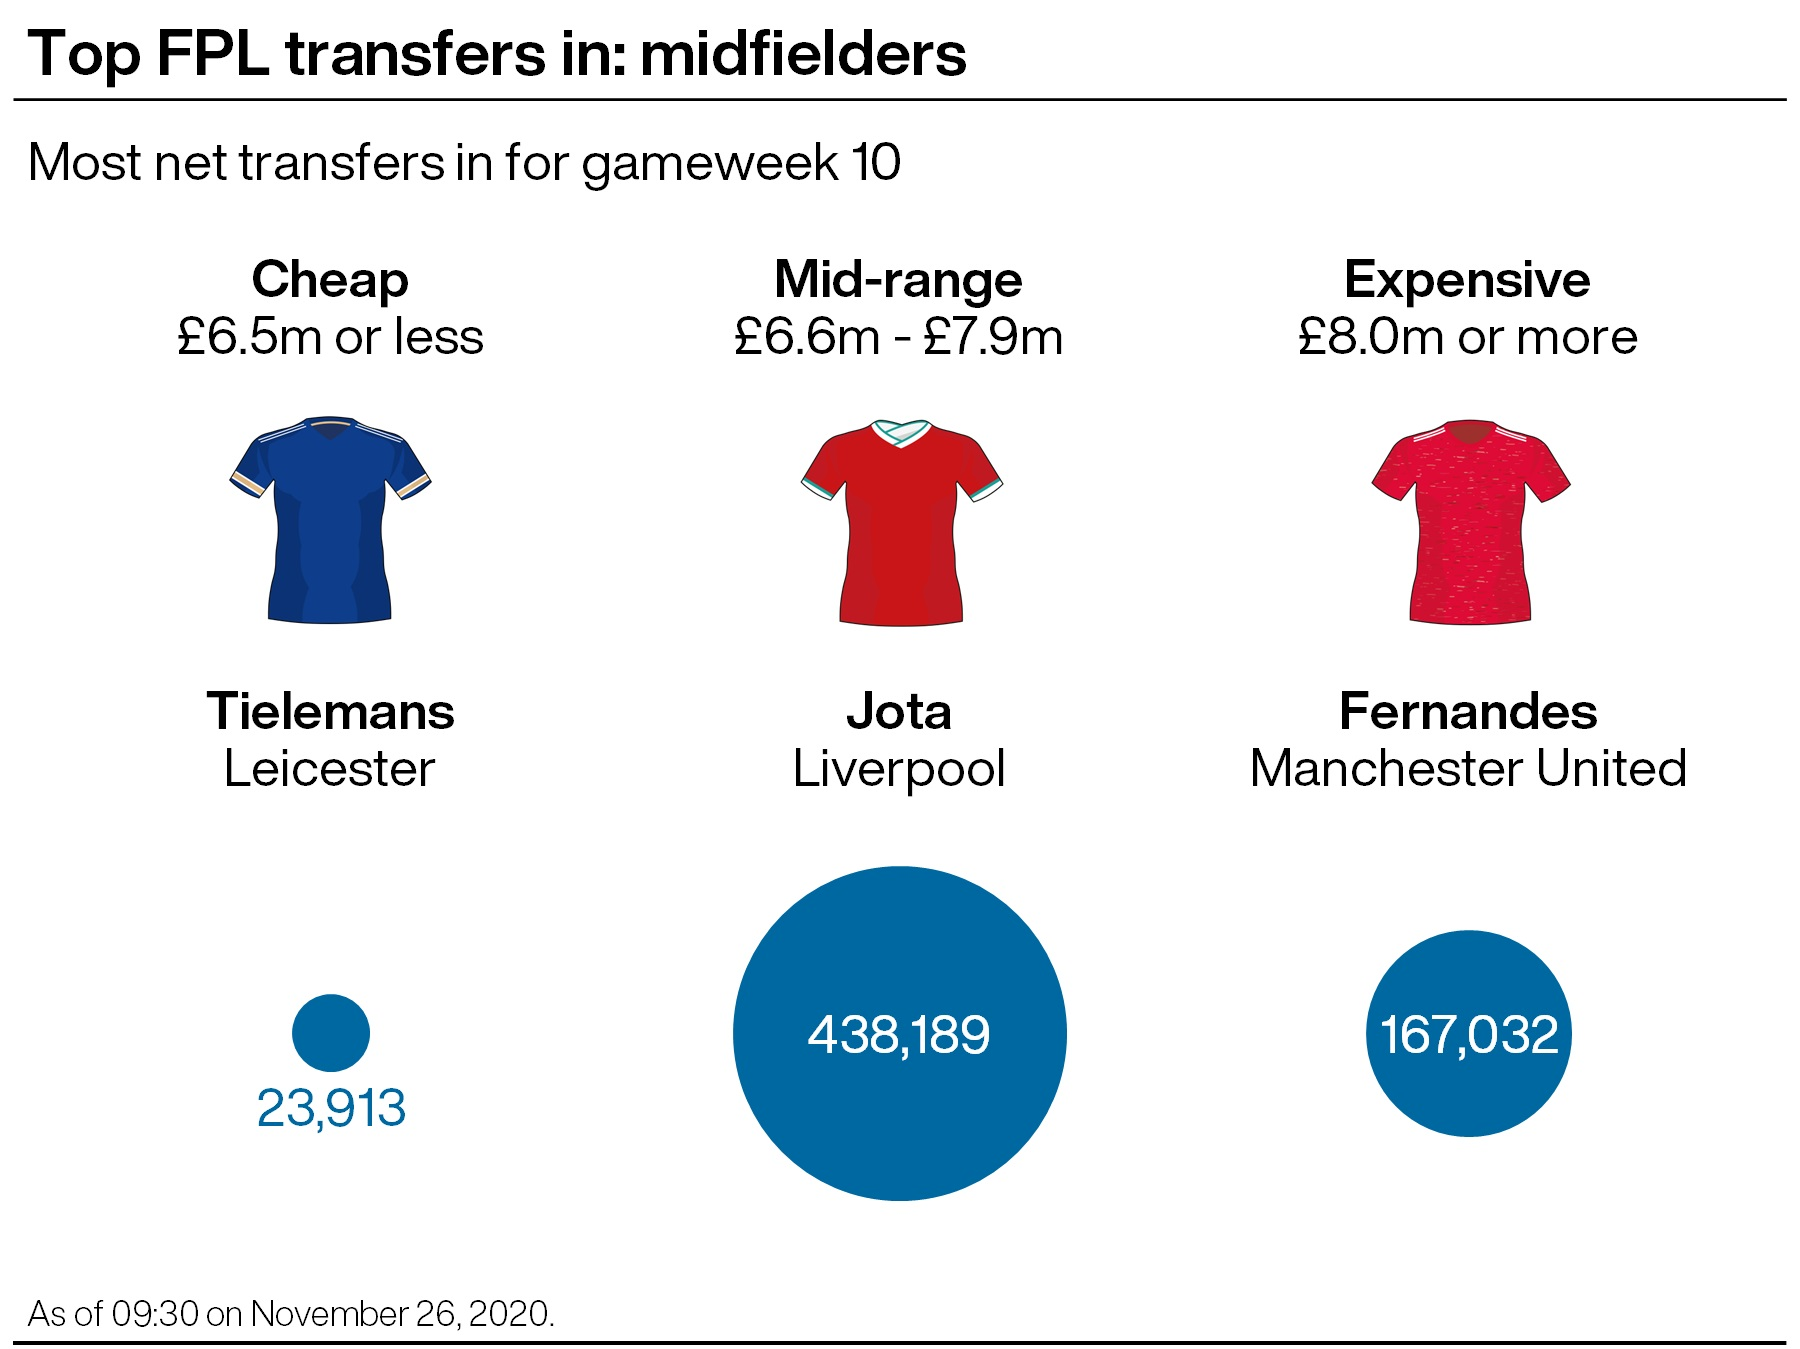 A graphic showing which Premier League midfielders were the most transferred in ahead of gameweek 10 in the FPL